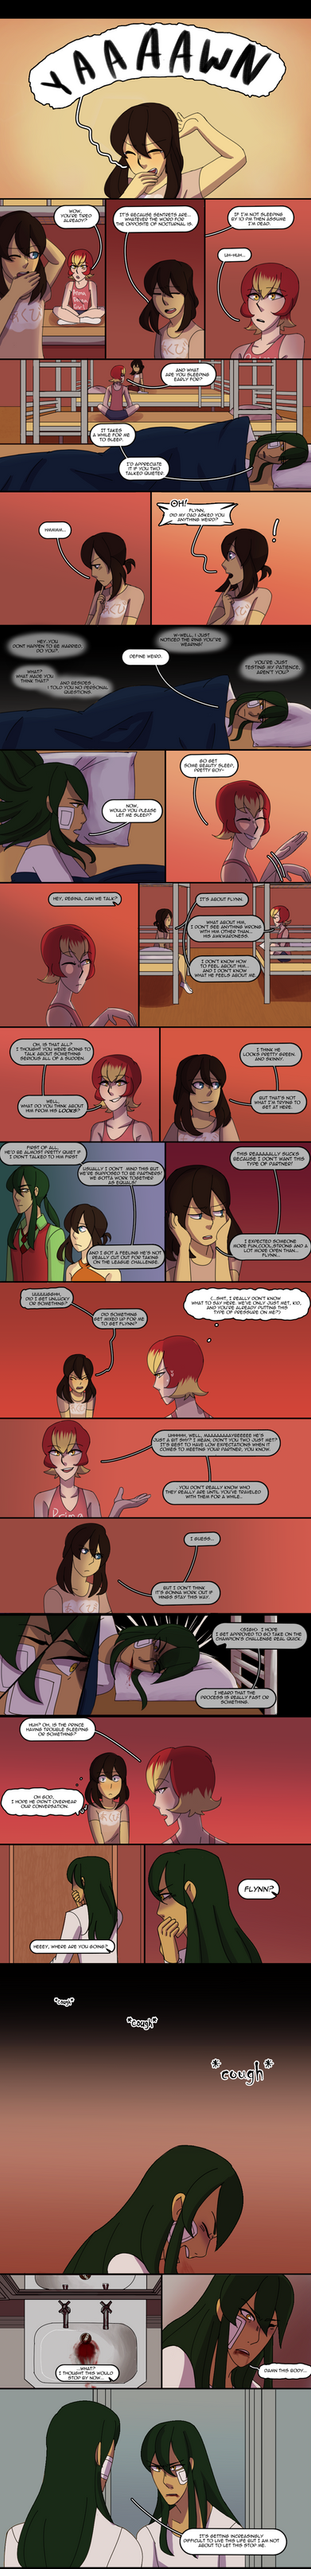 Star-Crossed Page 07 by dv9l